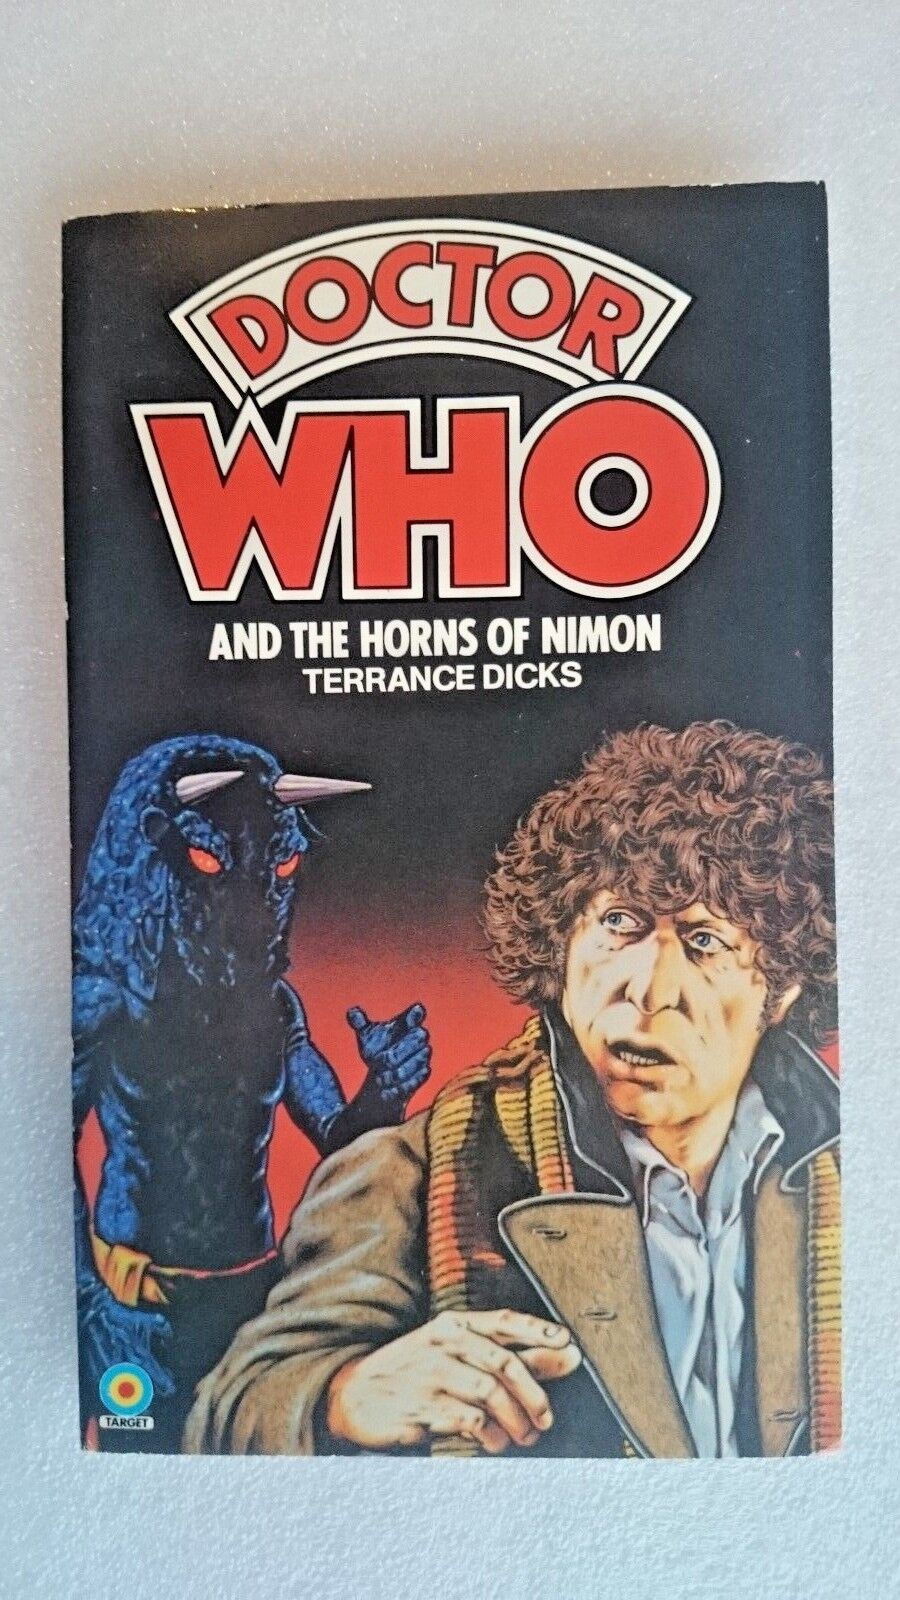 Doctor Who and the Horns of Nimon by Terrance Dicks (Paperback, 1980)